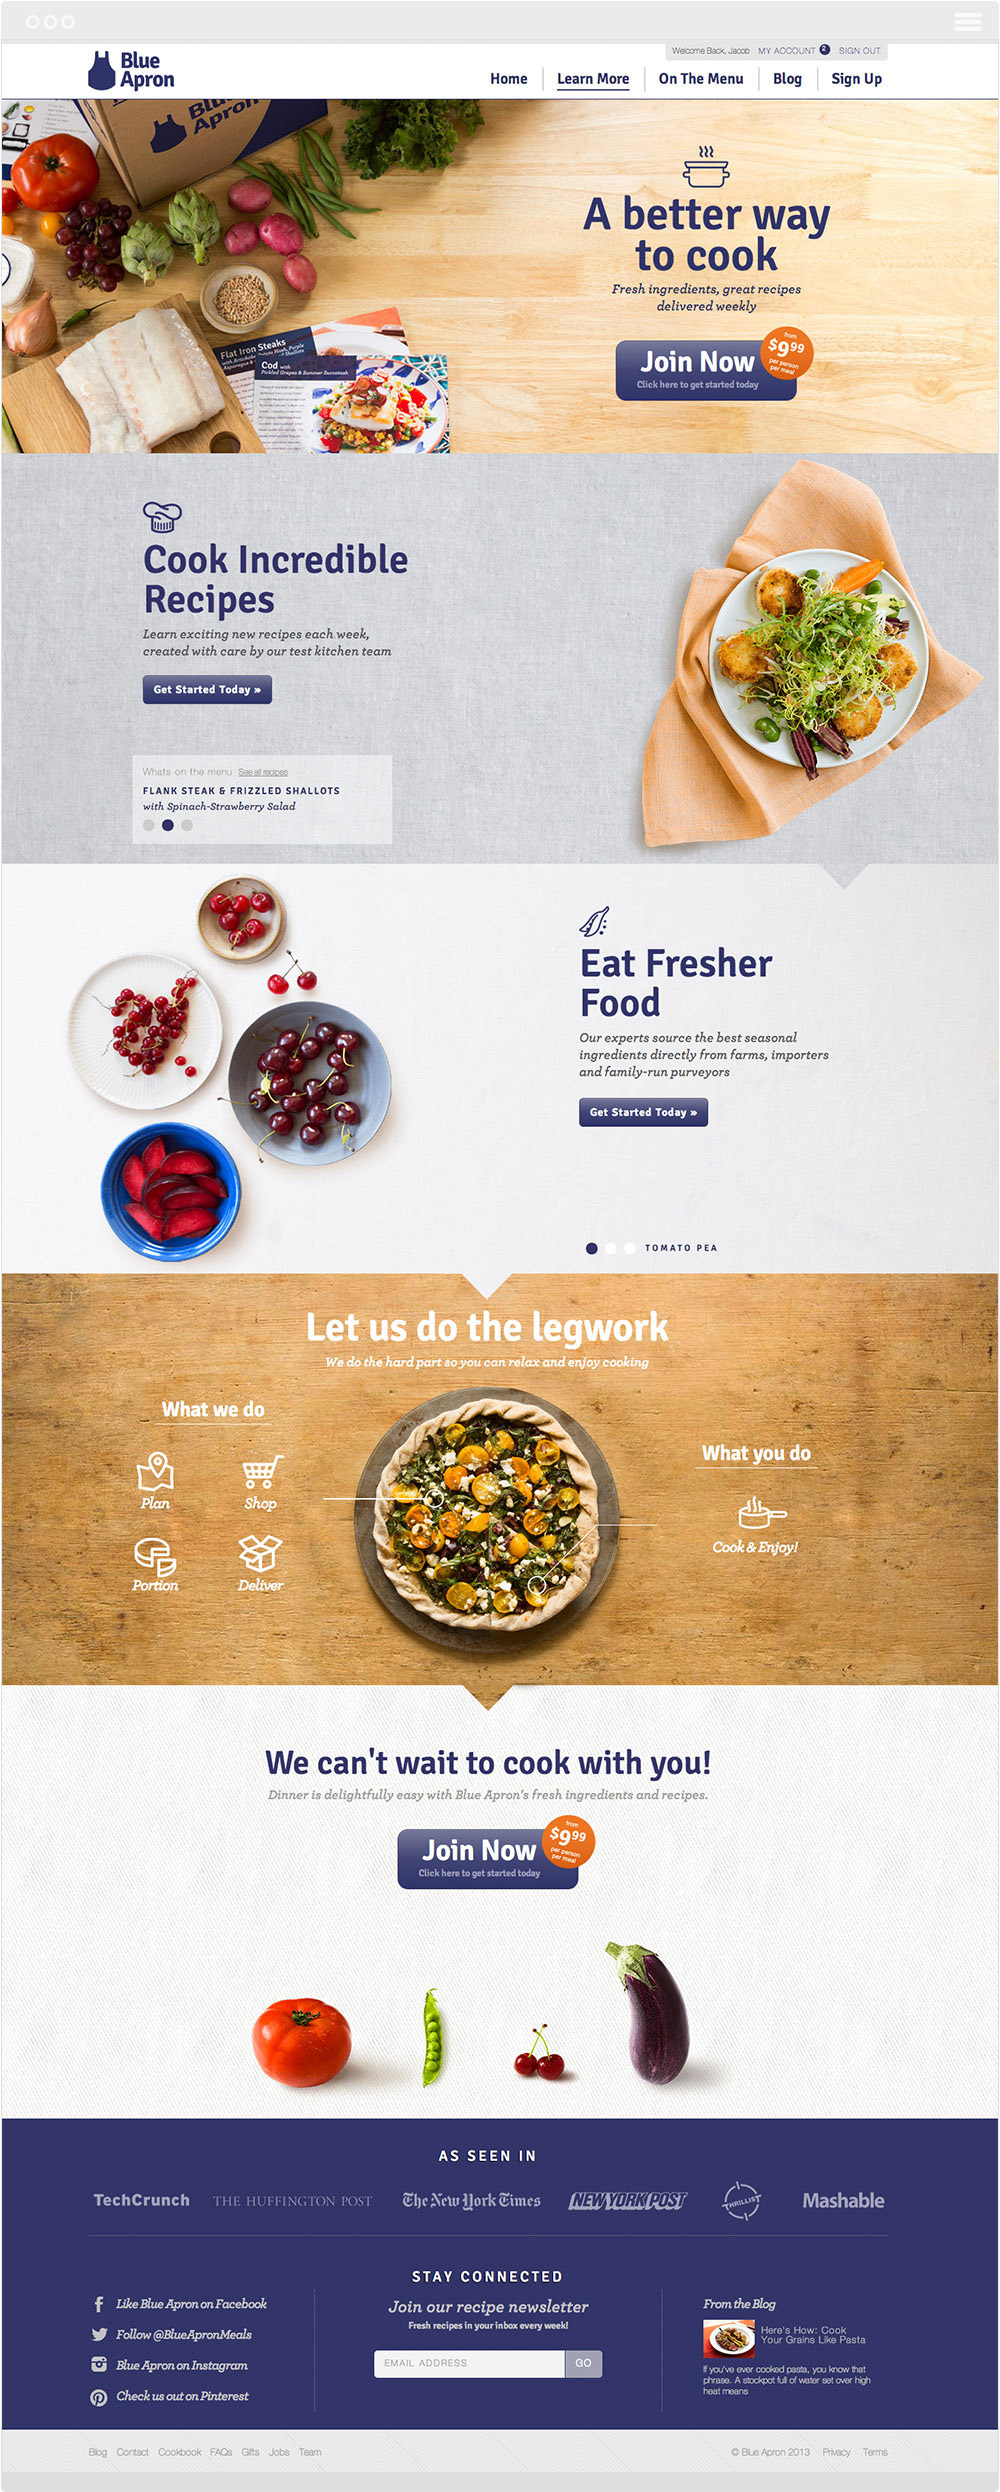 Blue apron quality - Blue Apron Is Dedicated To Bringing Out The Inner Chef In All Of Us By Delivering Fresh High Quality Ingredients For Their Customers To Transform Into